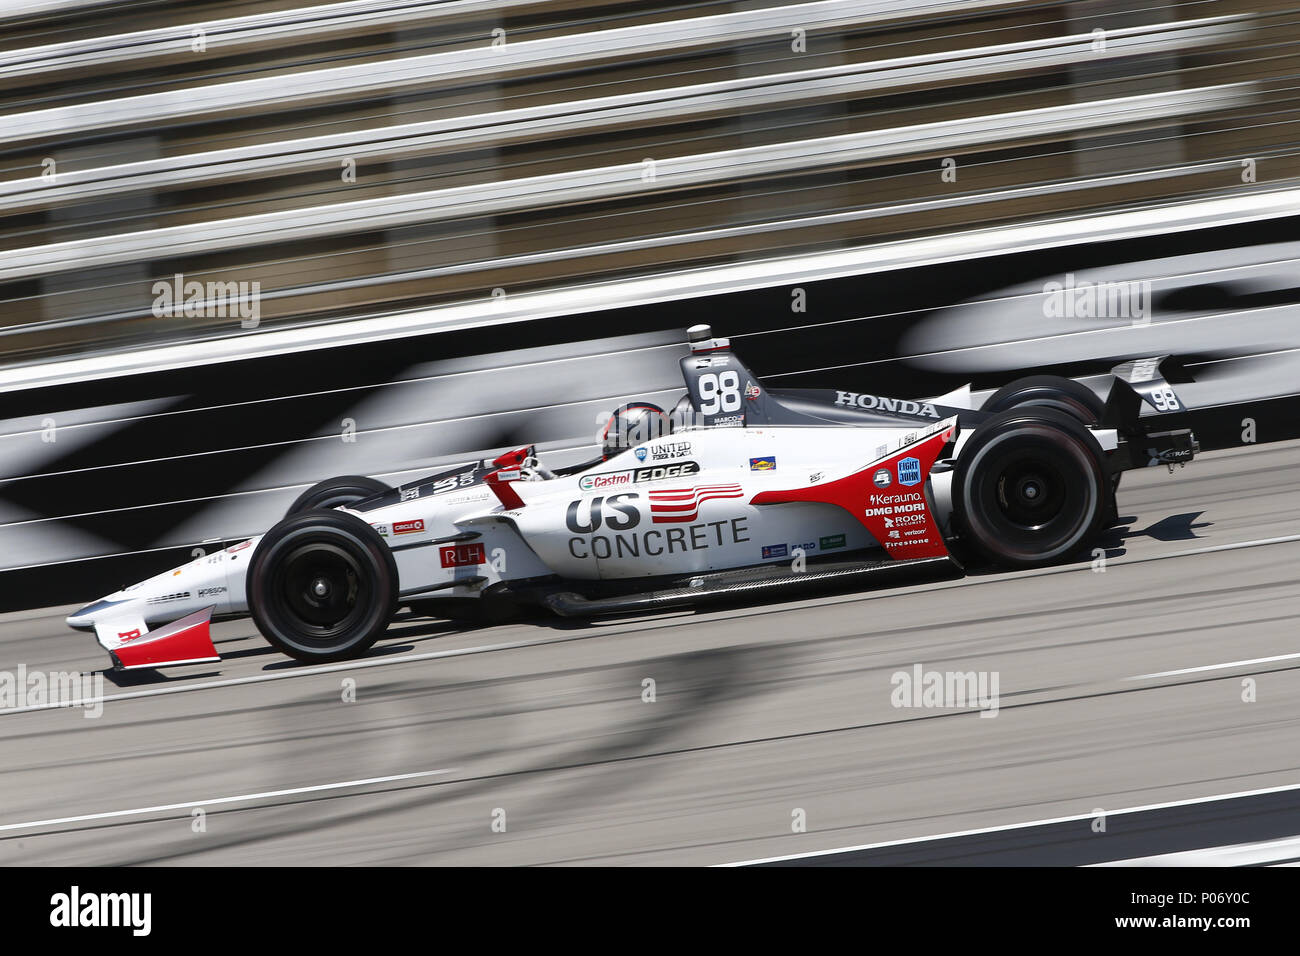 Fort Worth, Texas, USA. 8th June, 2018. MARCO ANDRETTI (98) of the ...